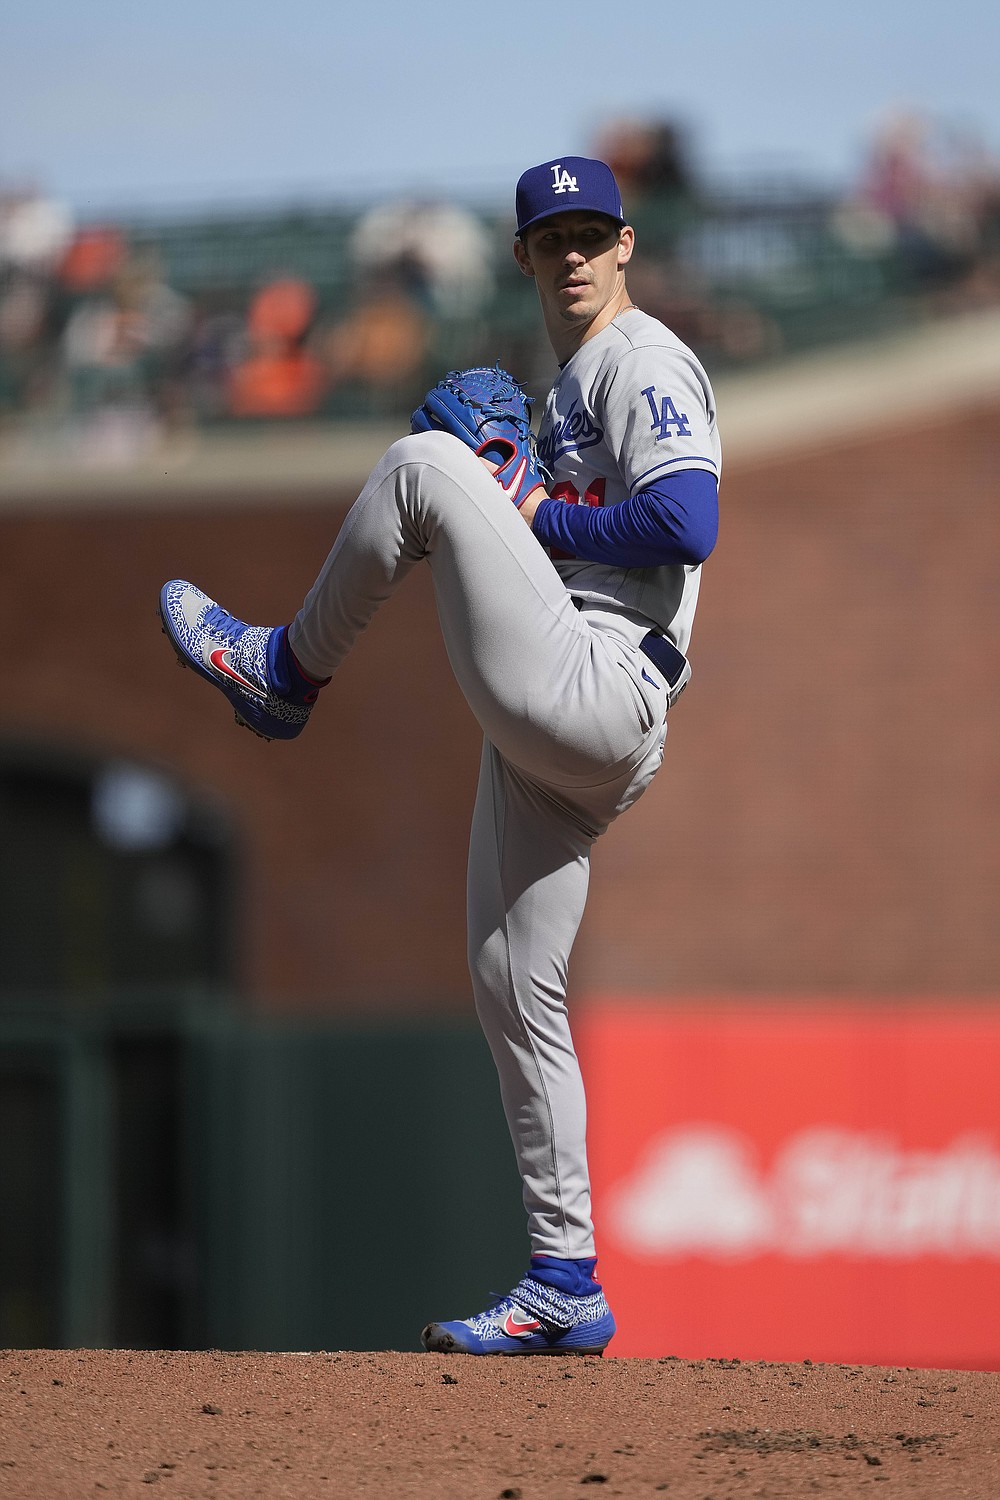 Los Angeles Dodgers starting pitcher Walker Buehler prepares to throw against the San Francisco Giants during the first inning of a baseball game Saturday, May 22, 2021, in San Francisco. (AP Photo/Tony Avelar)